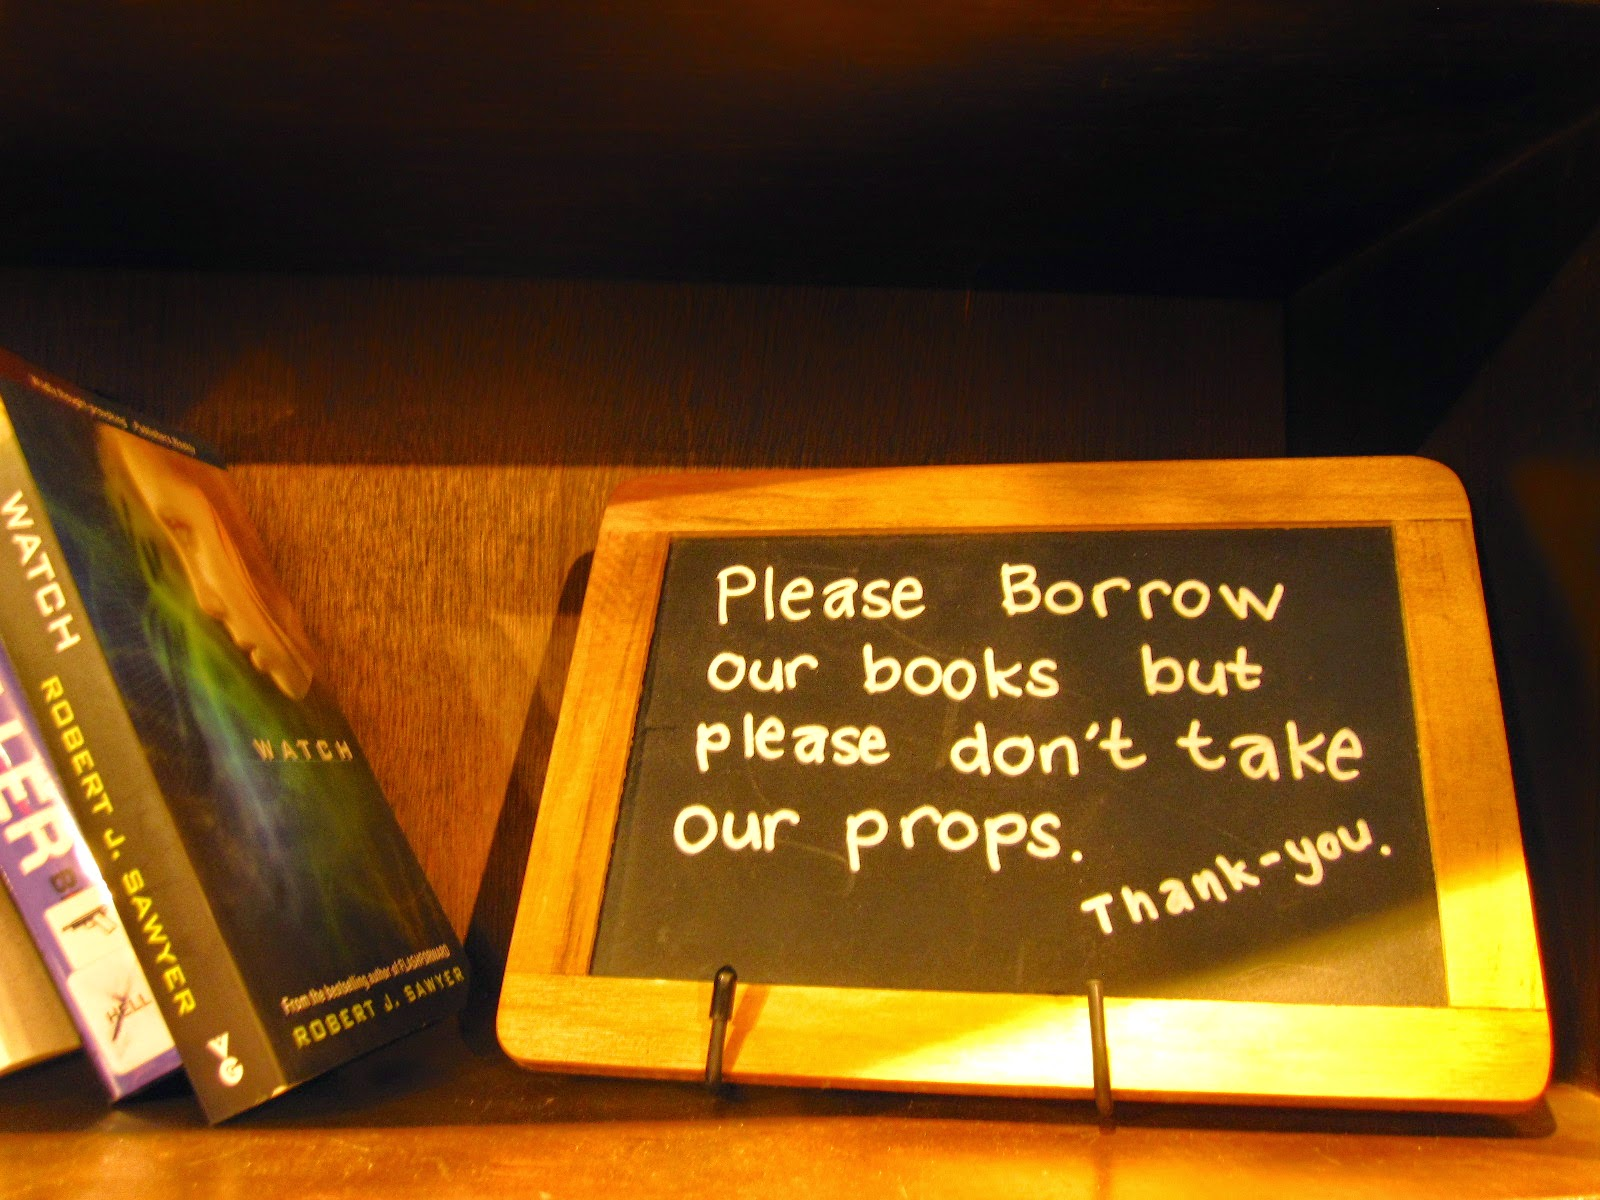 Blackboard sign on a shelf of books at The Little Library in Melbourne Central: 'Please borrow our books, but please don't take our props. Thank you.'